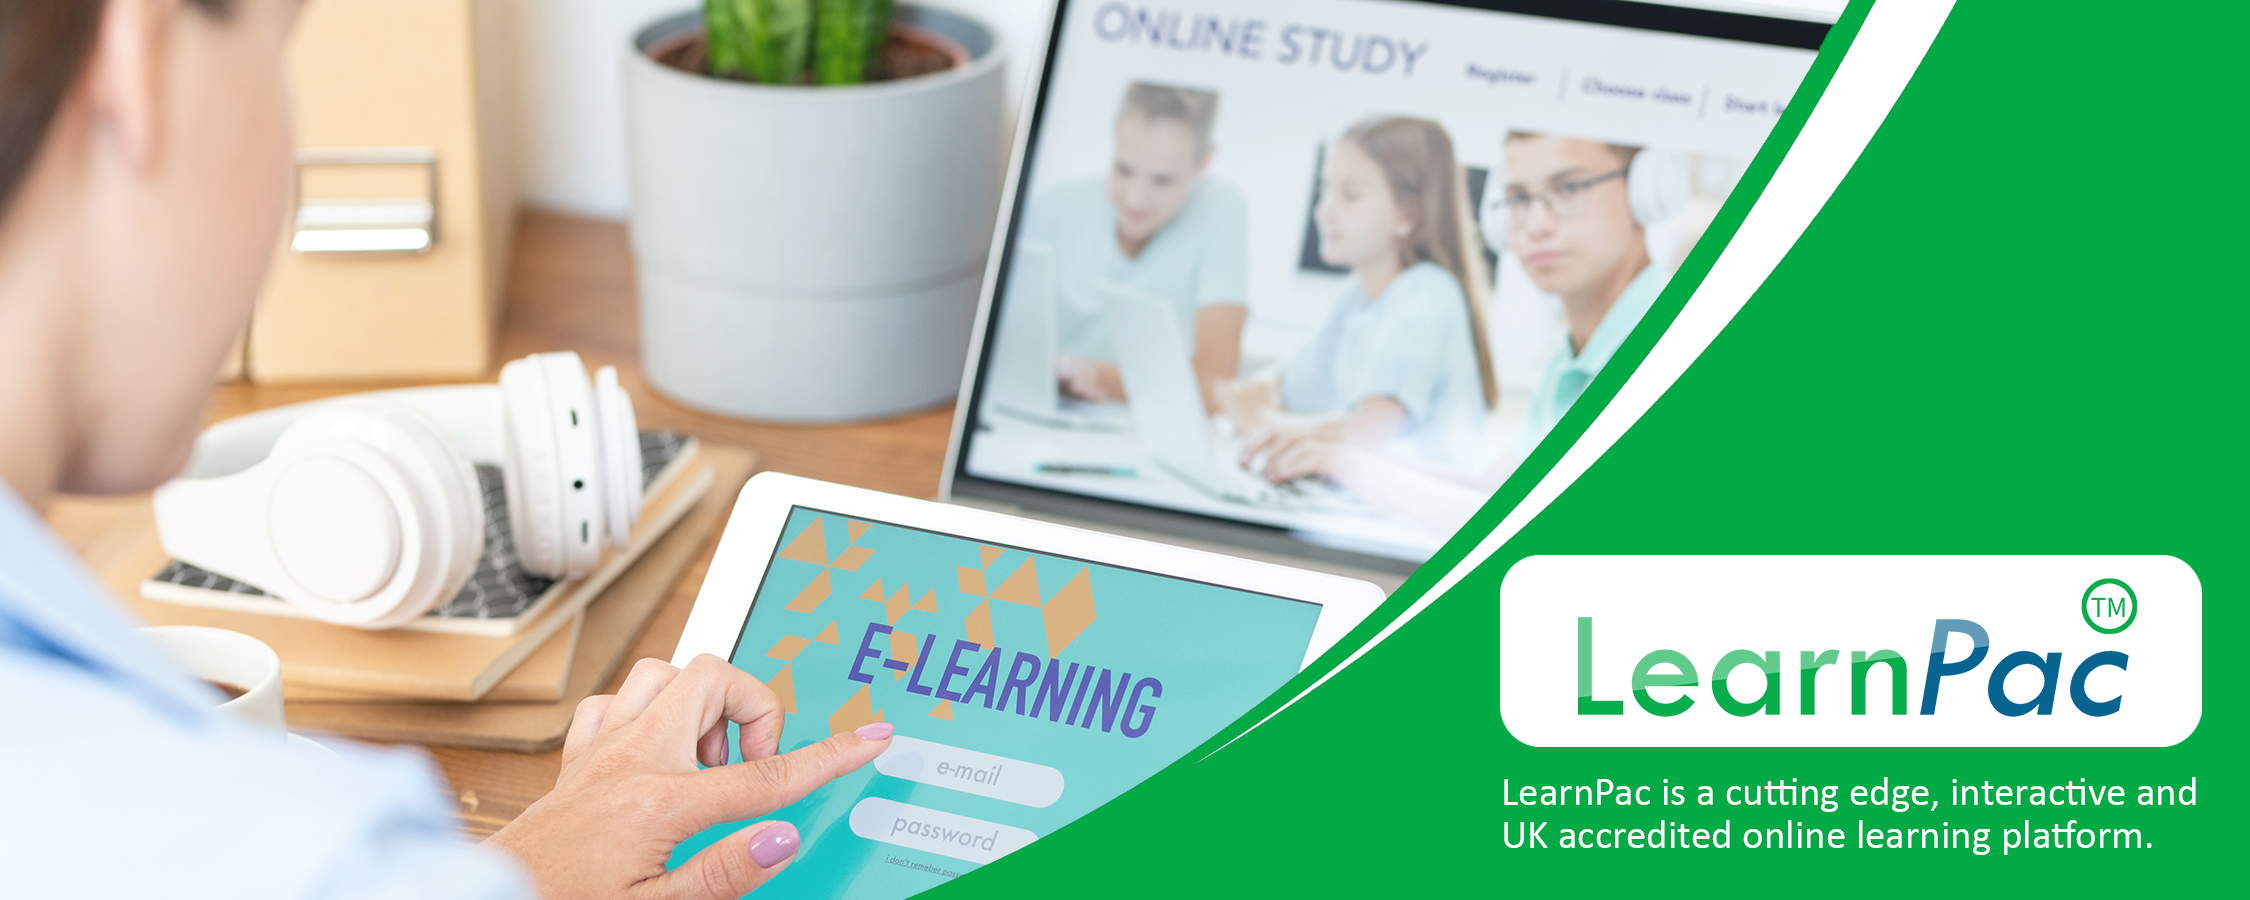 Dementia Care Training - Online Learning Courses - E-Learning Courses - LearnPac Systems UK --